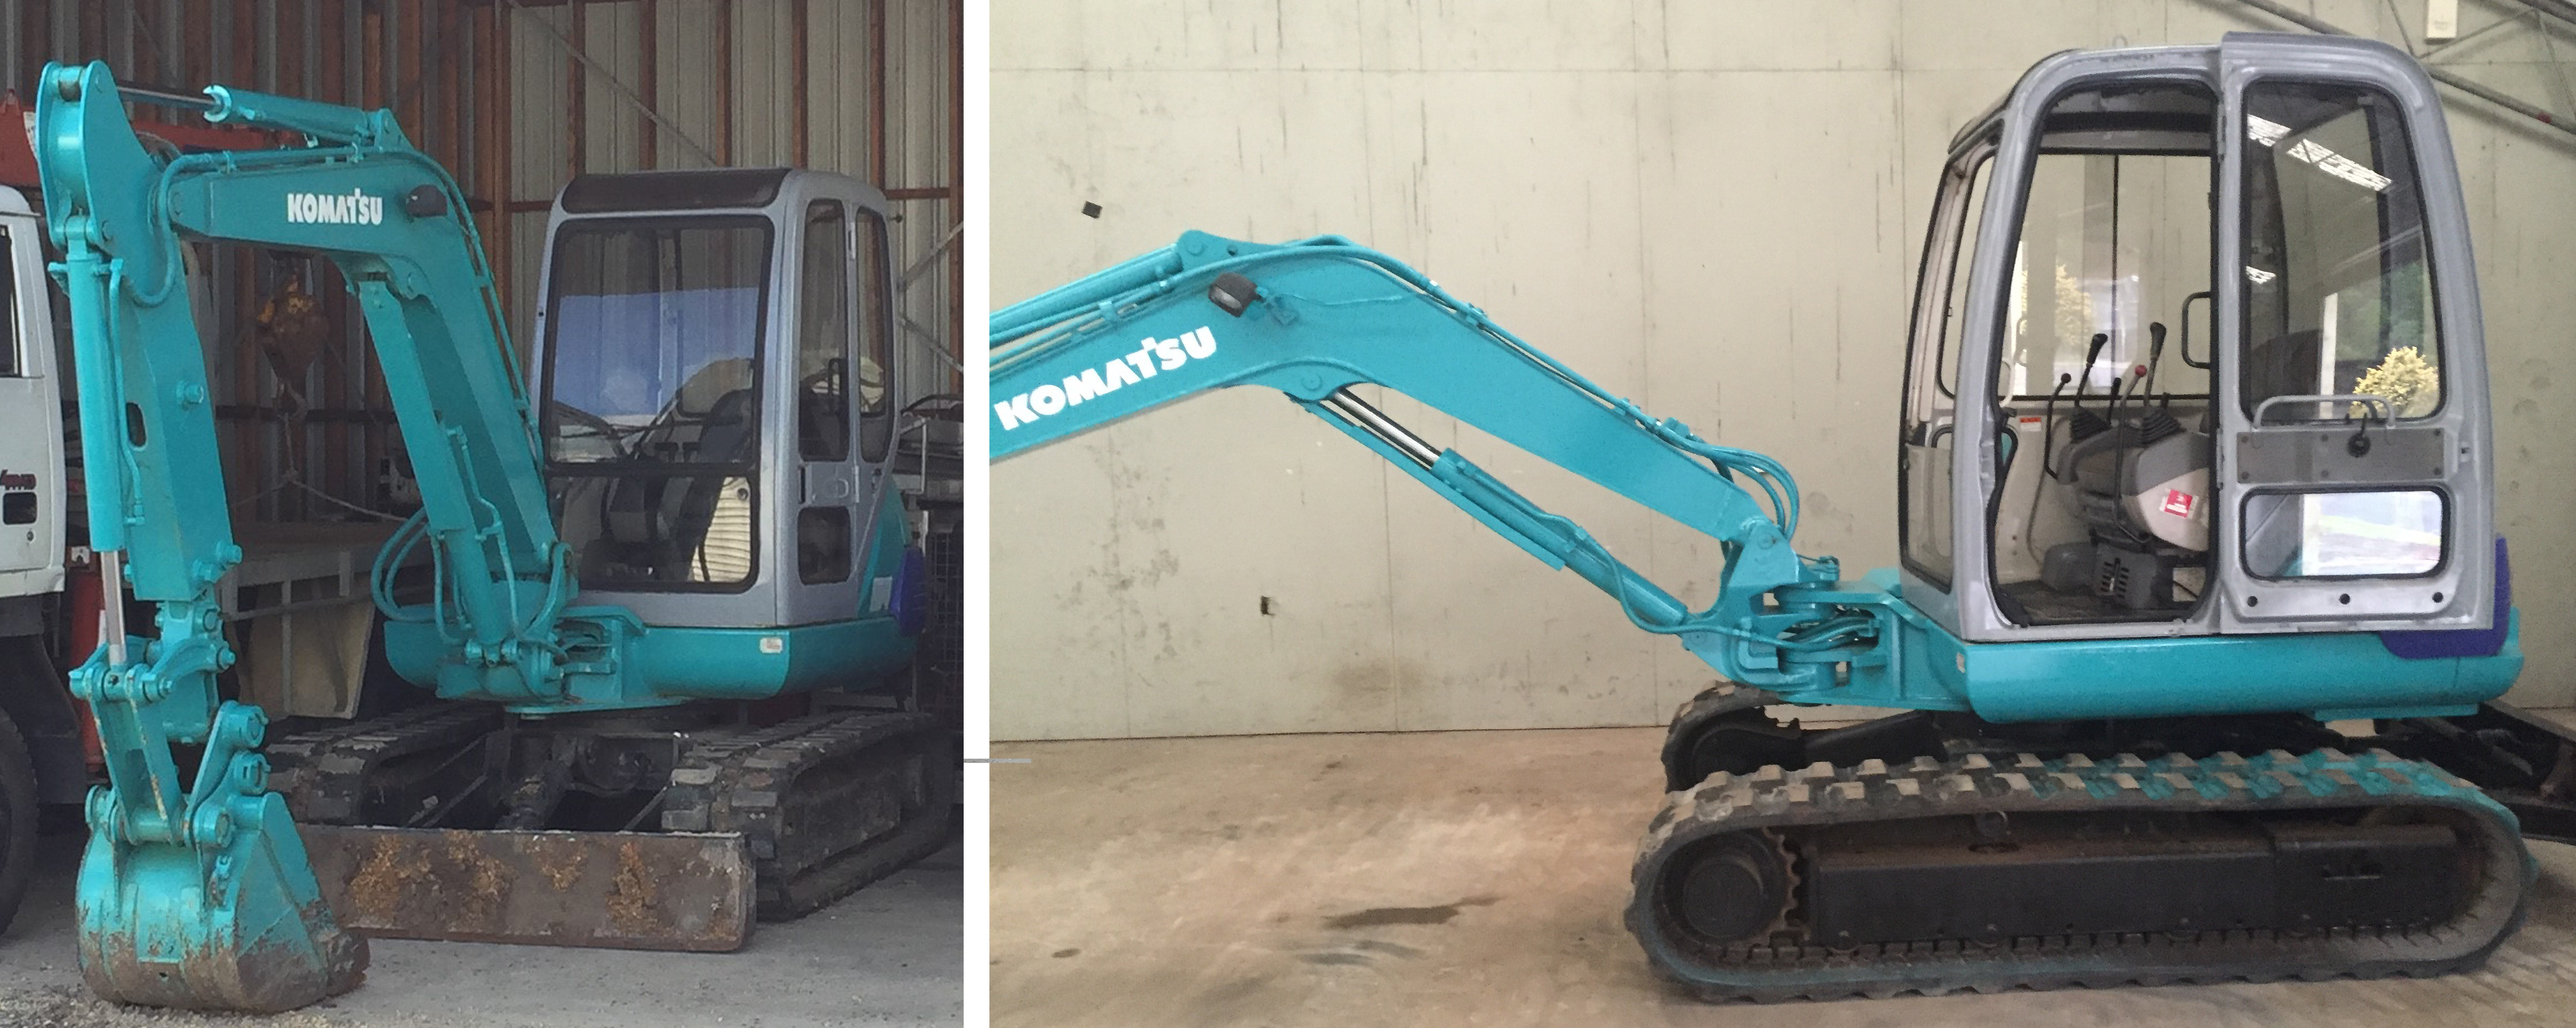 Excavator stolen from Hampshire between 15 March and 22 March 2019